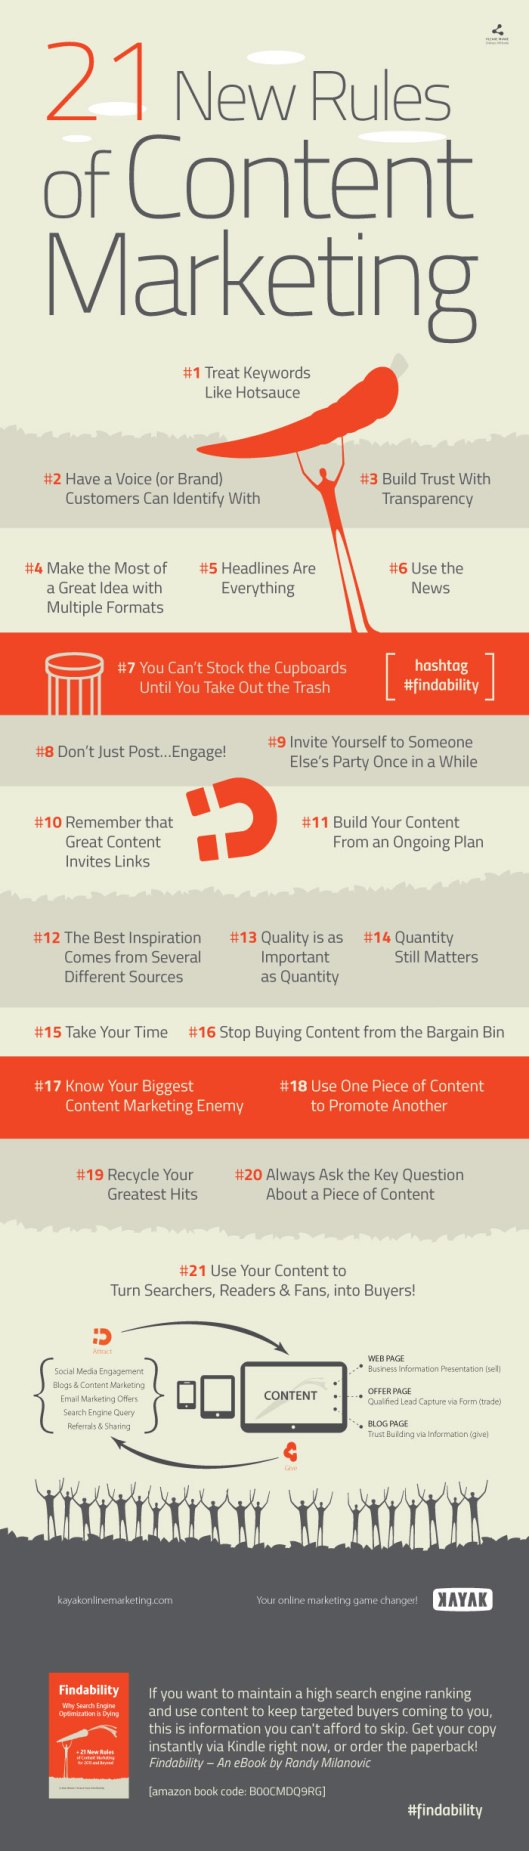 21-Content-Marketing-Rules-Infographic (1)